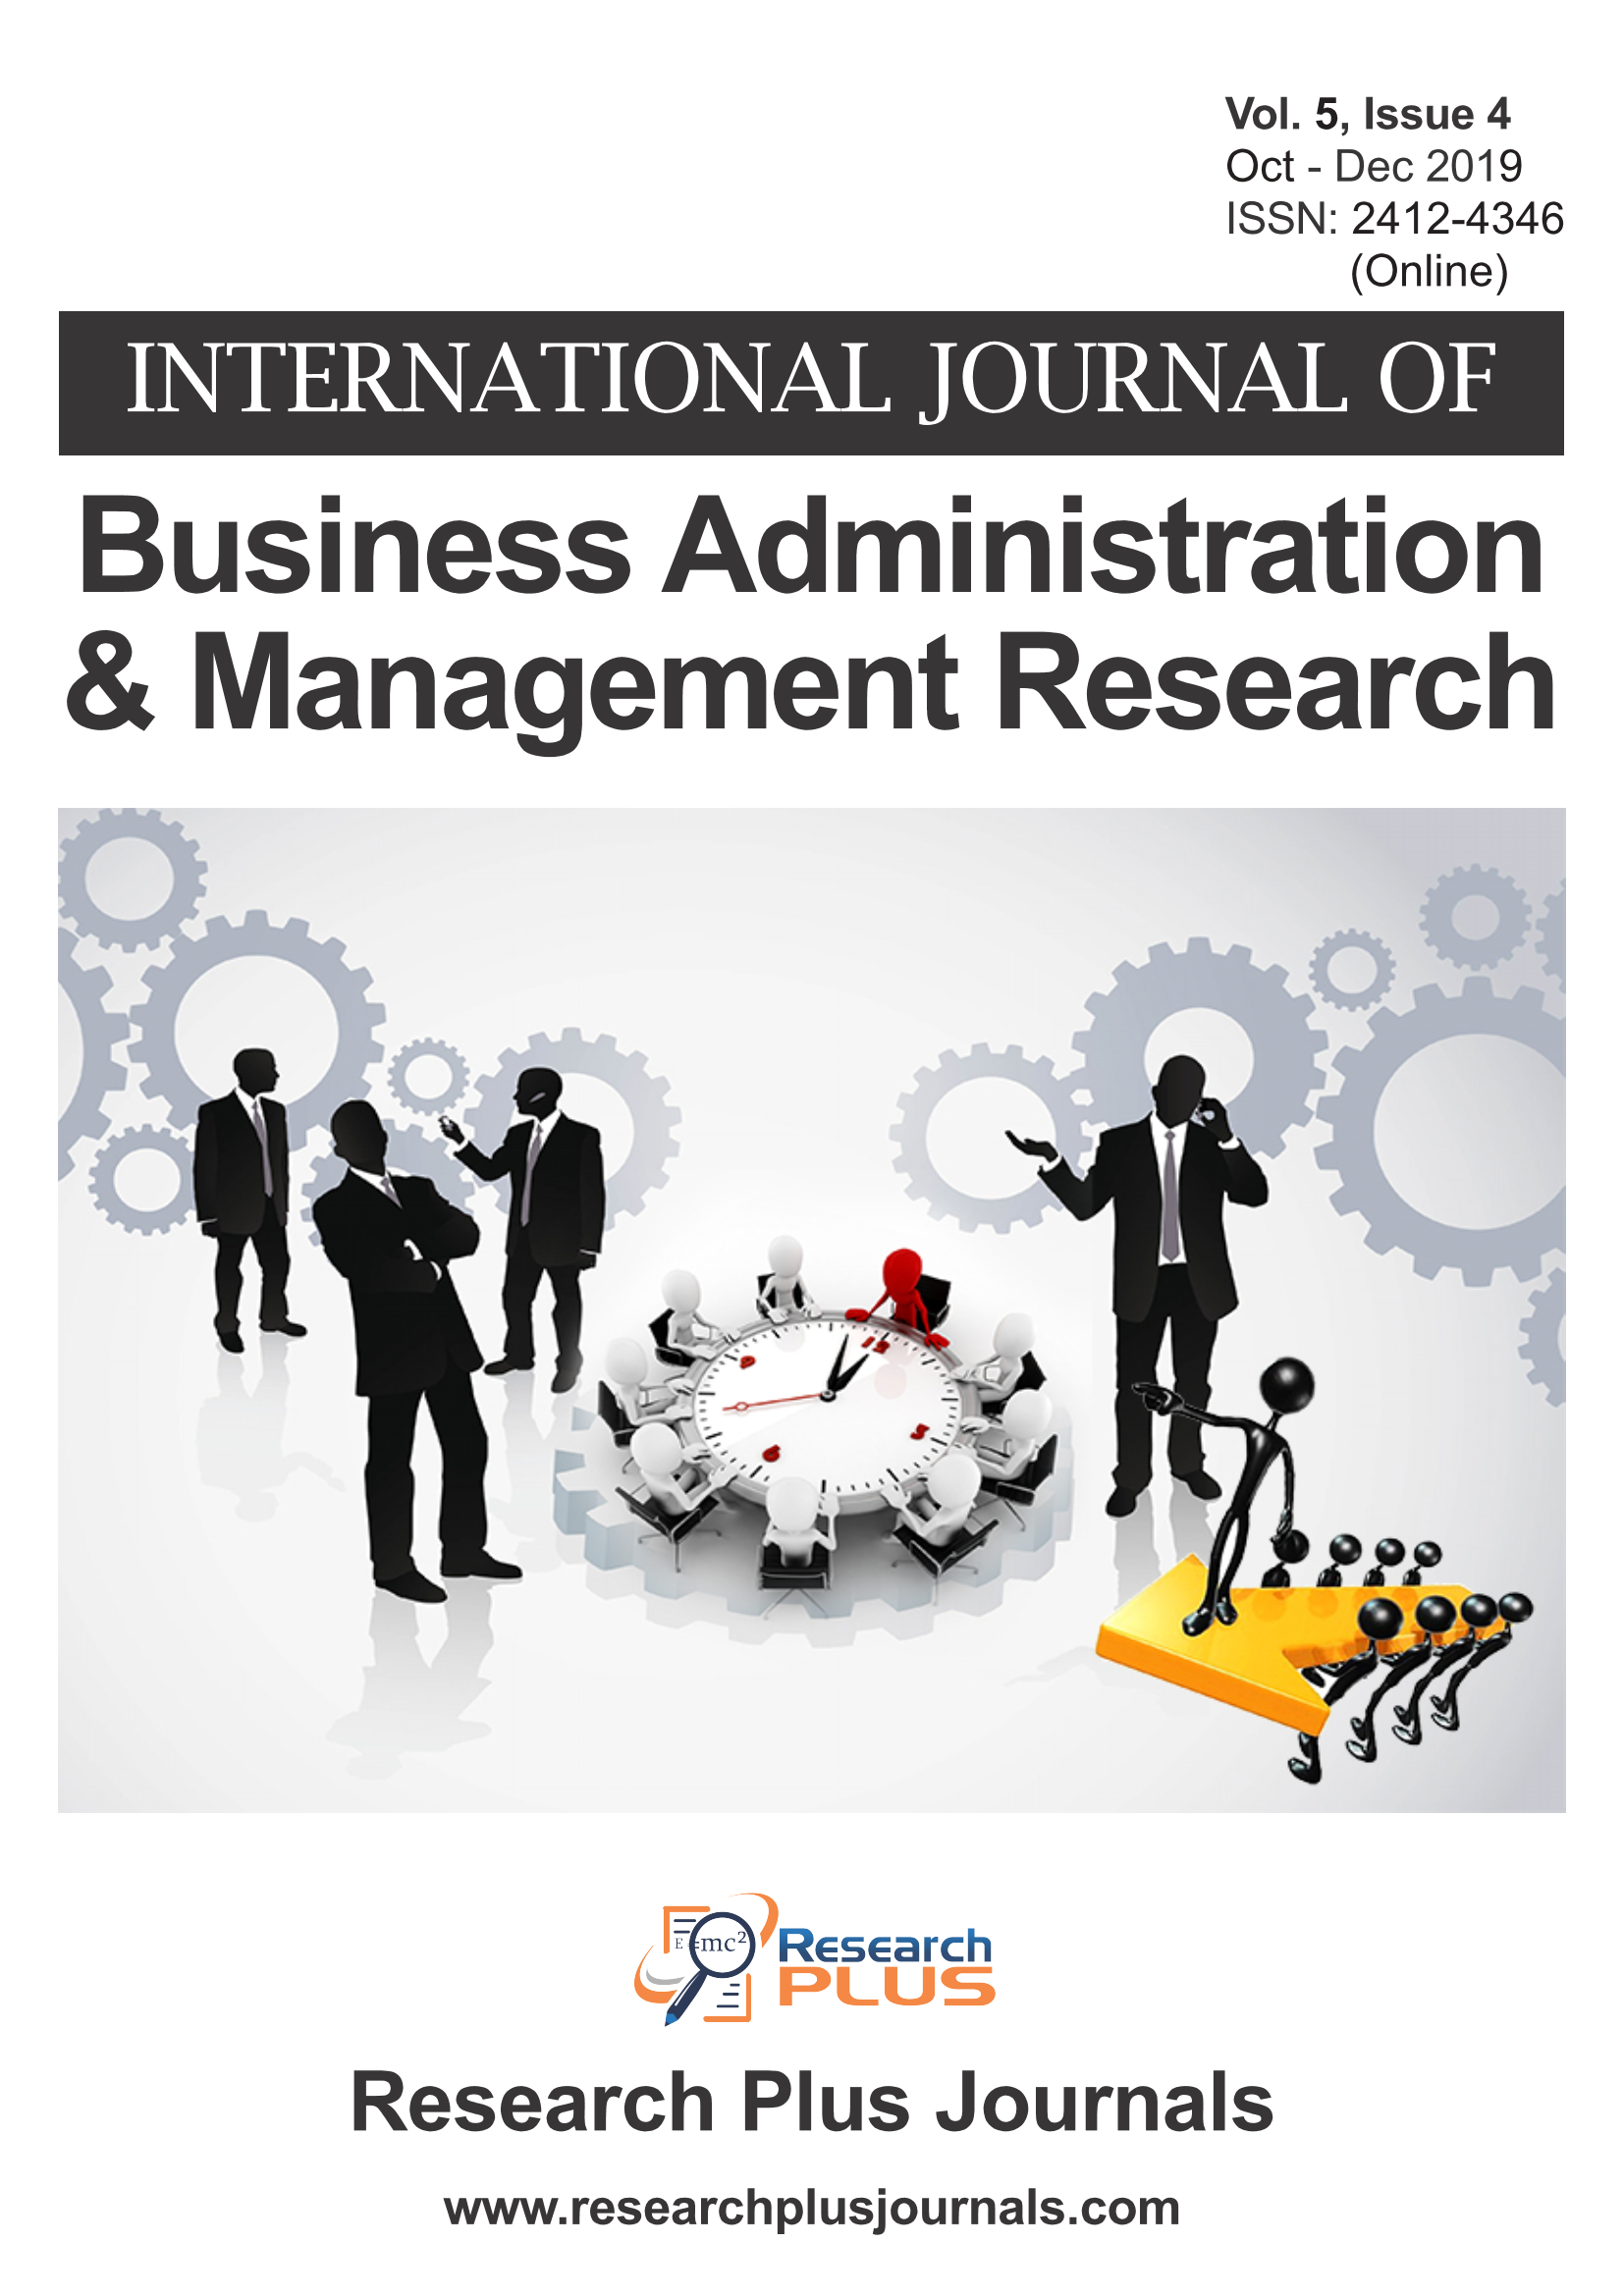 Volume 5, Issue 4, International Journal of Business Administration and Management Research (IJBAMR) (Online ISSN: 2412-4346)